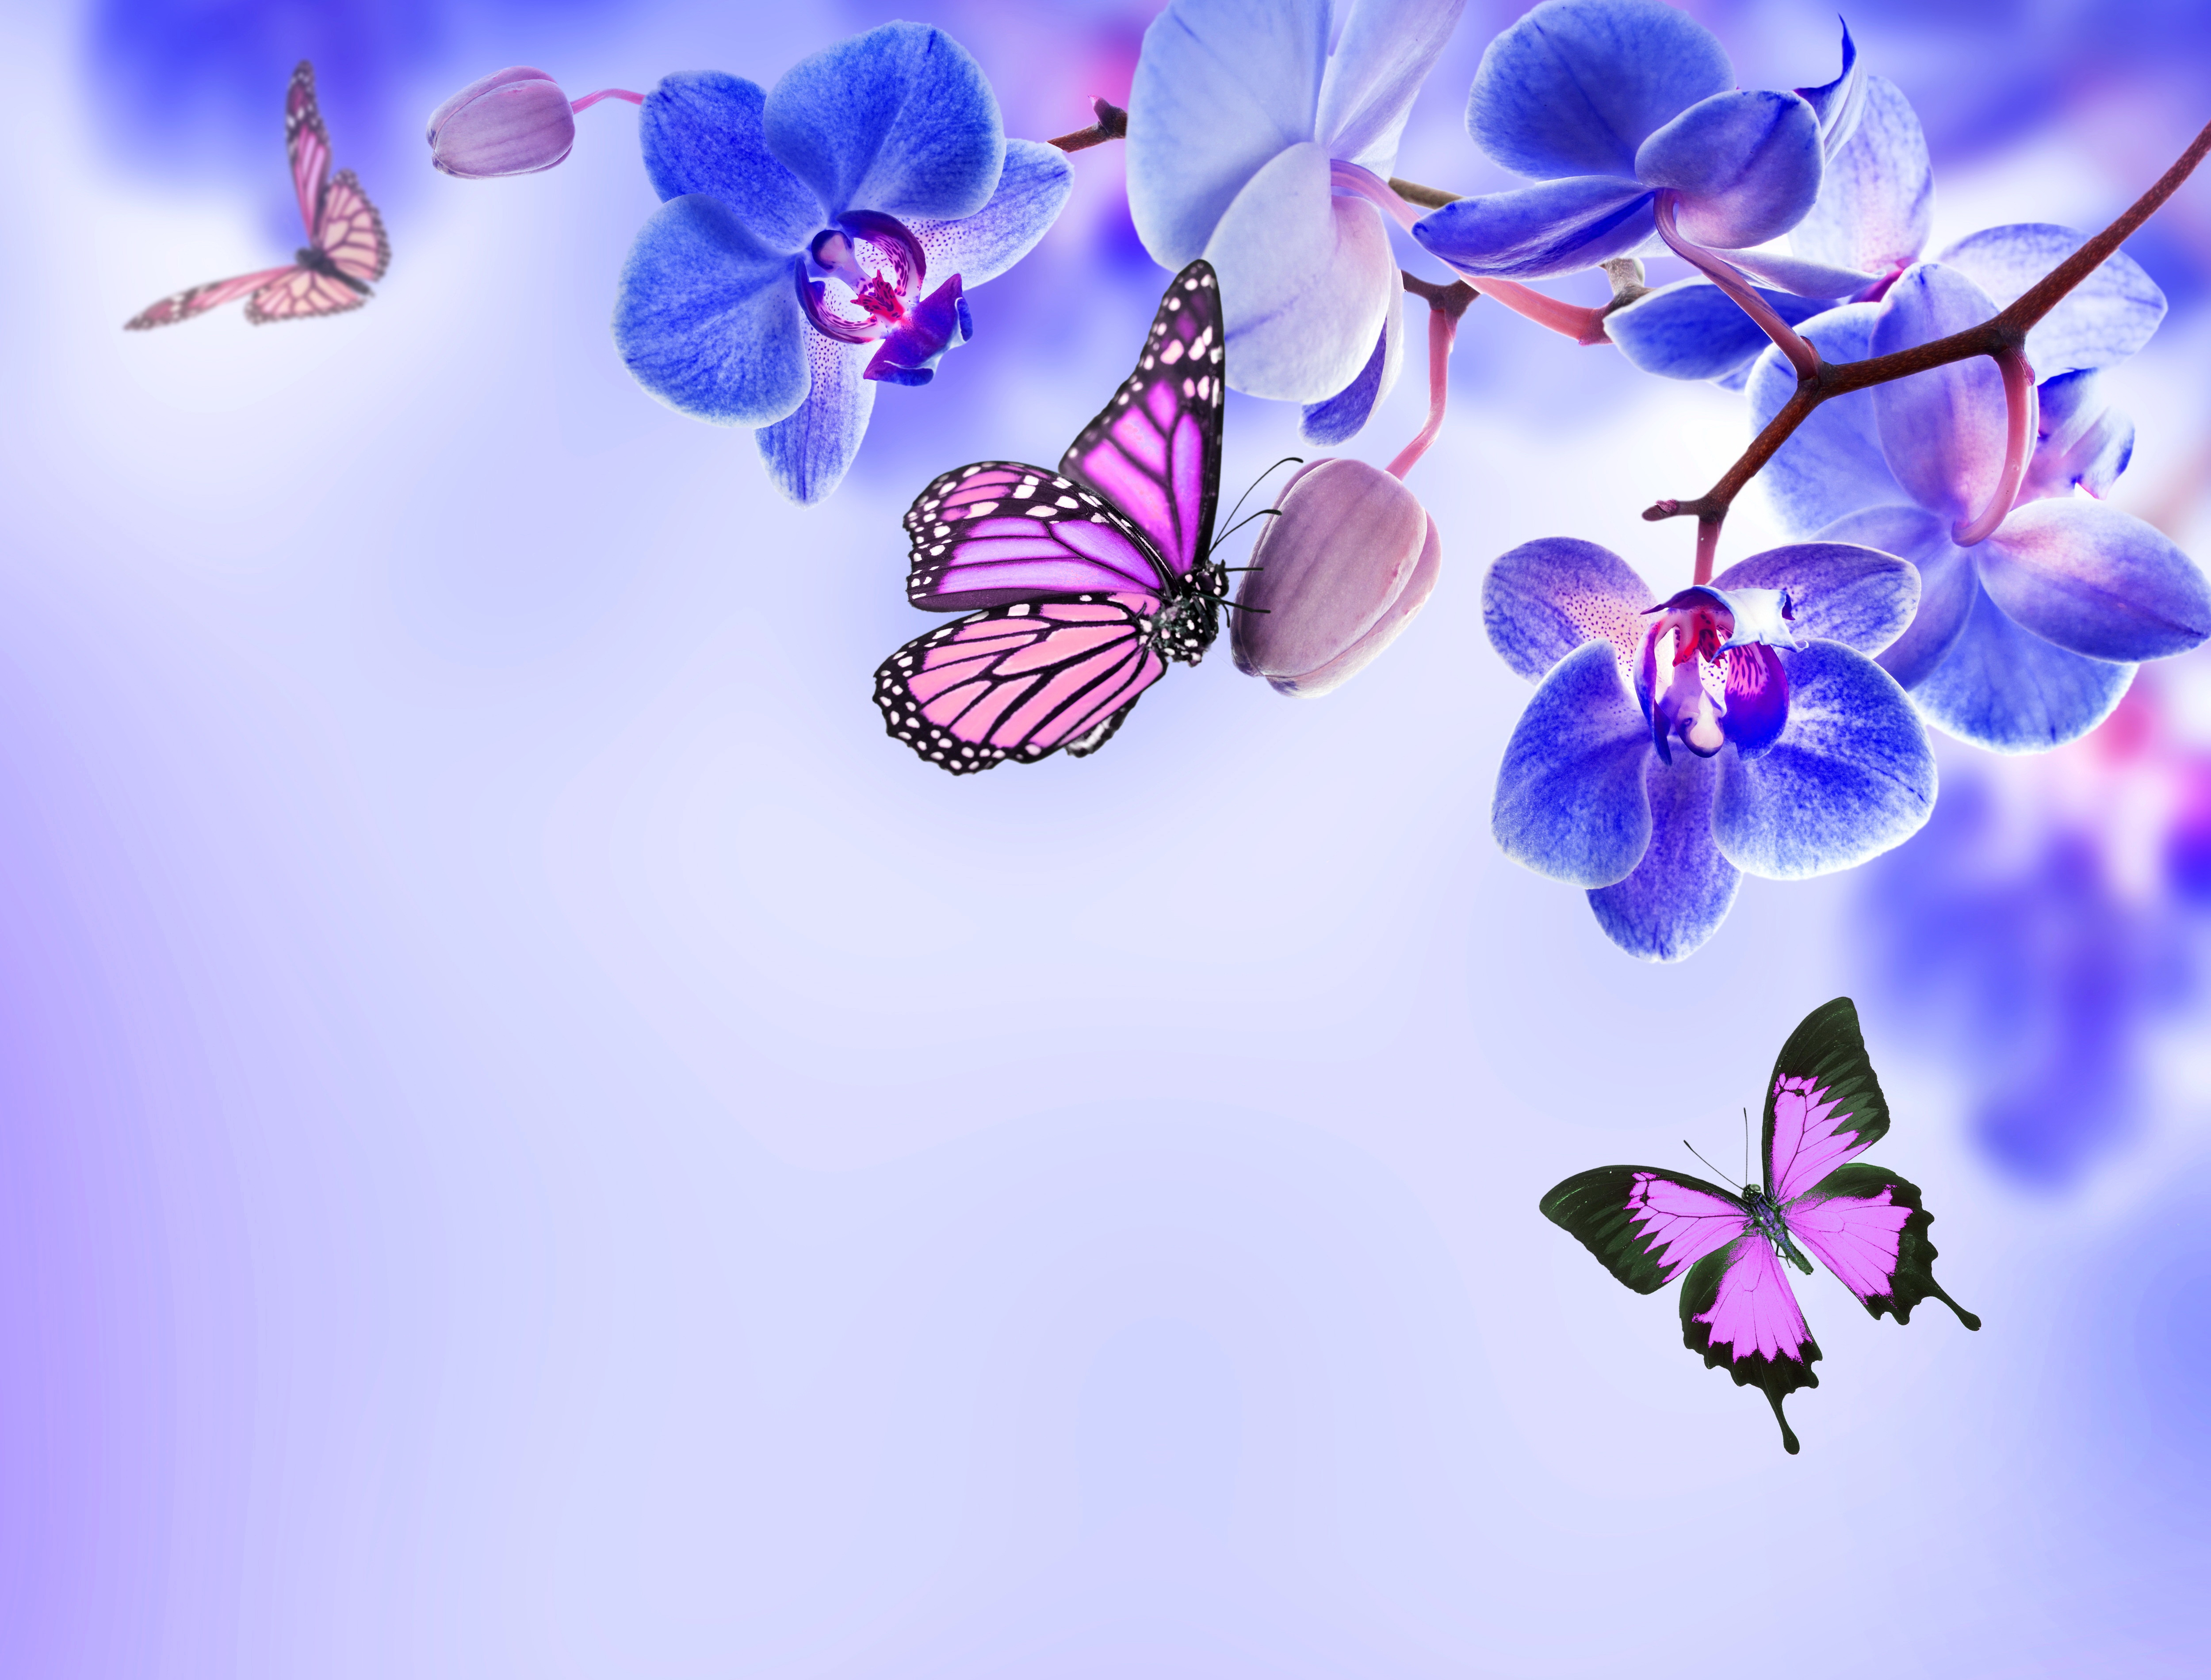 Blue butterfly on pink flower